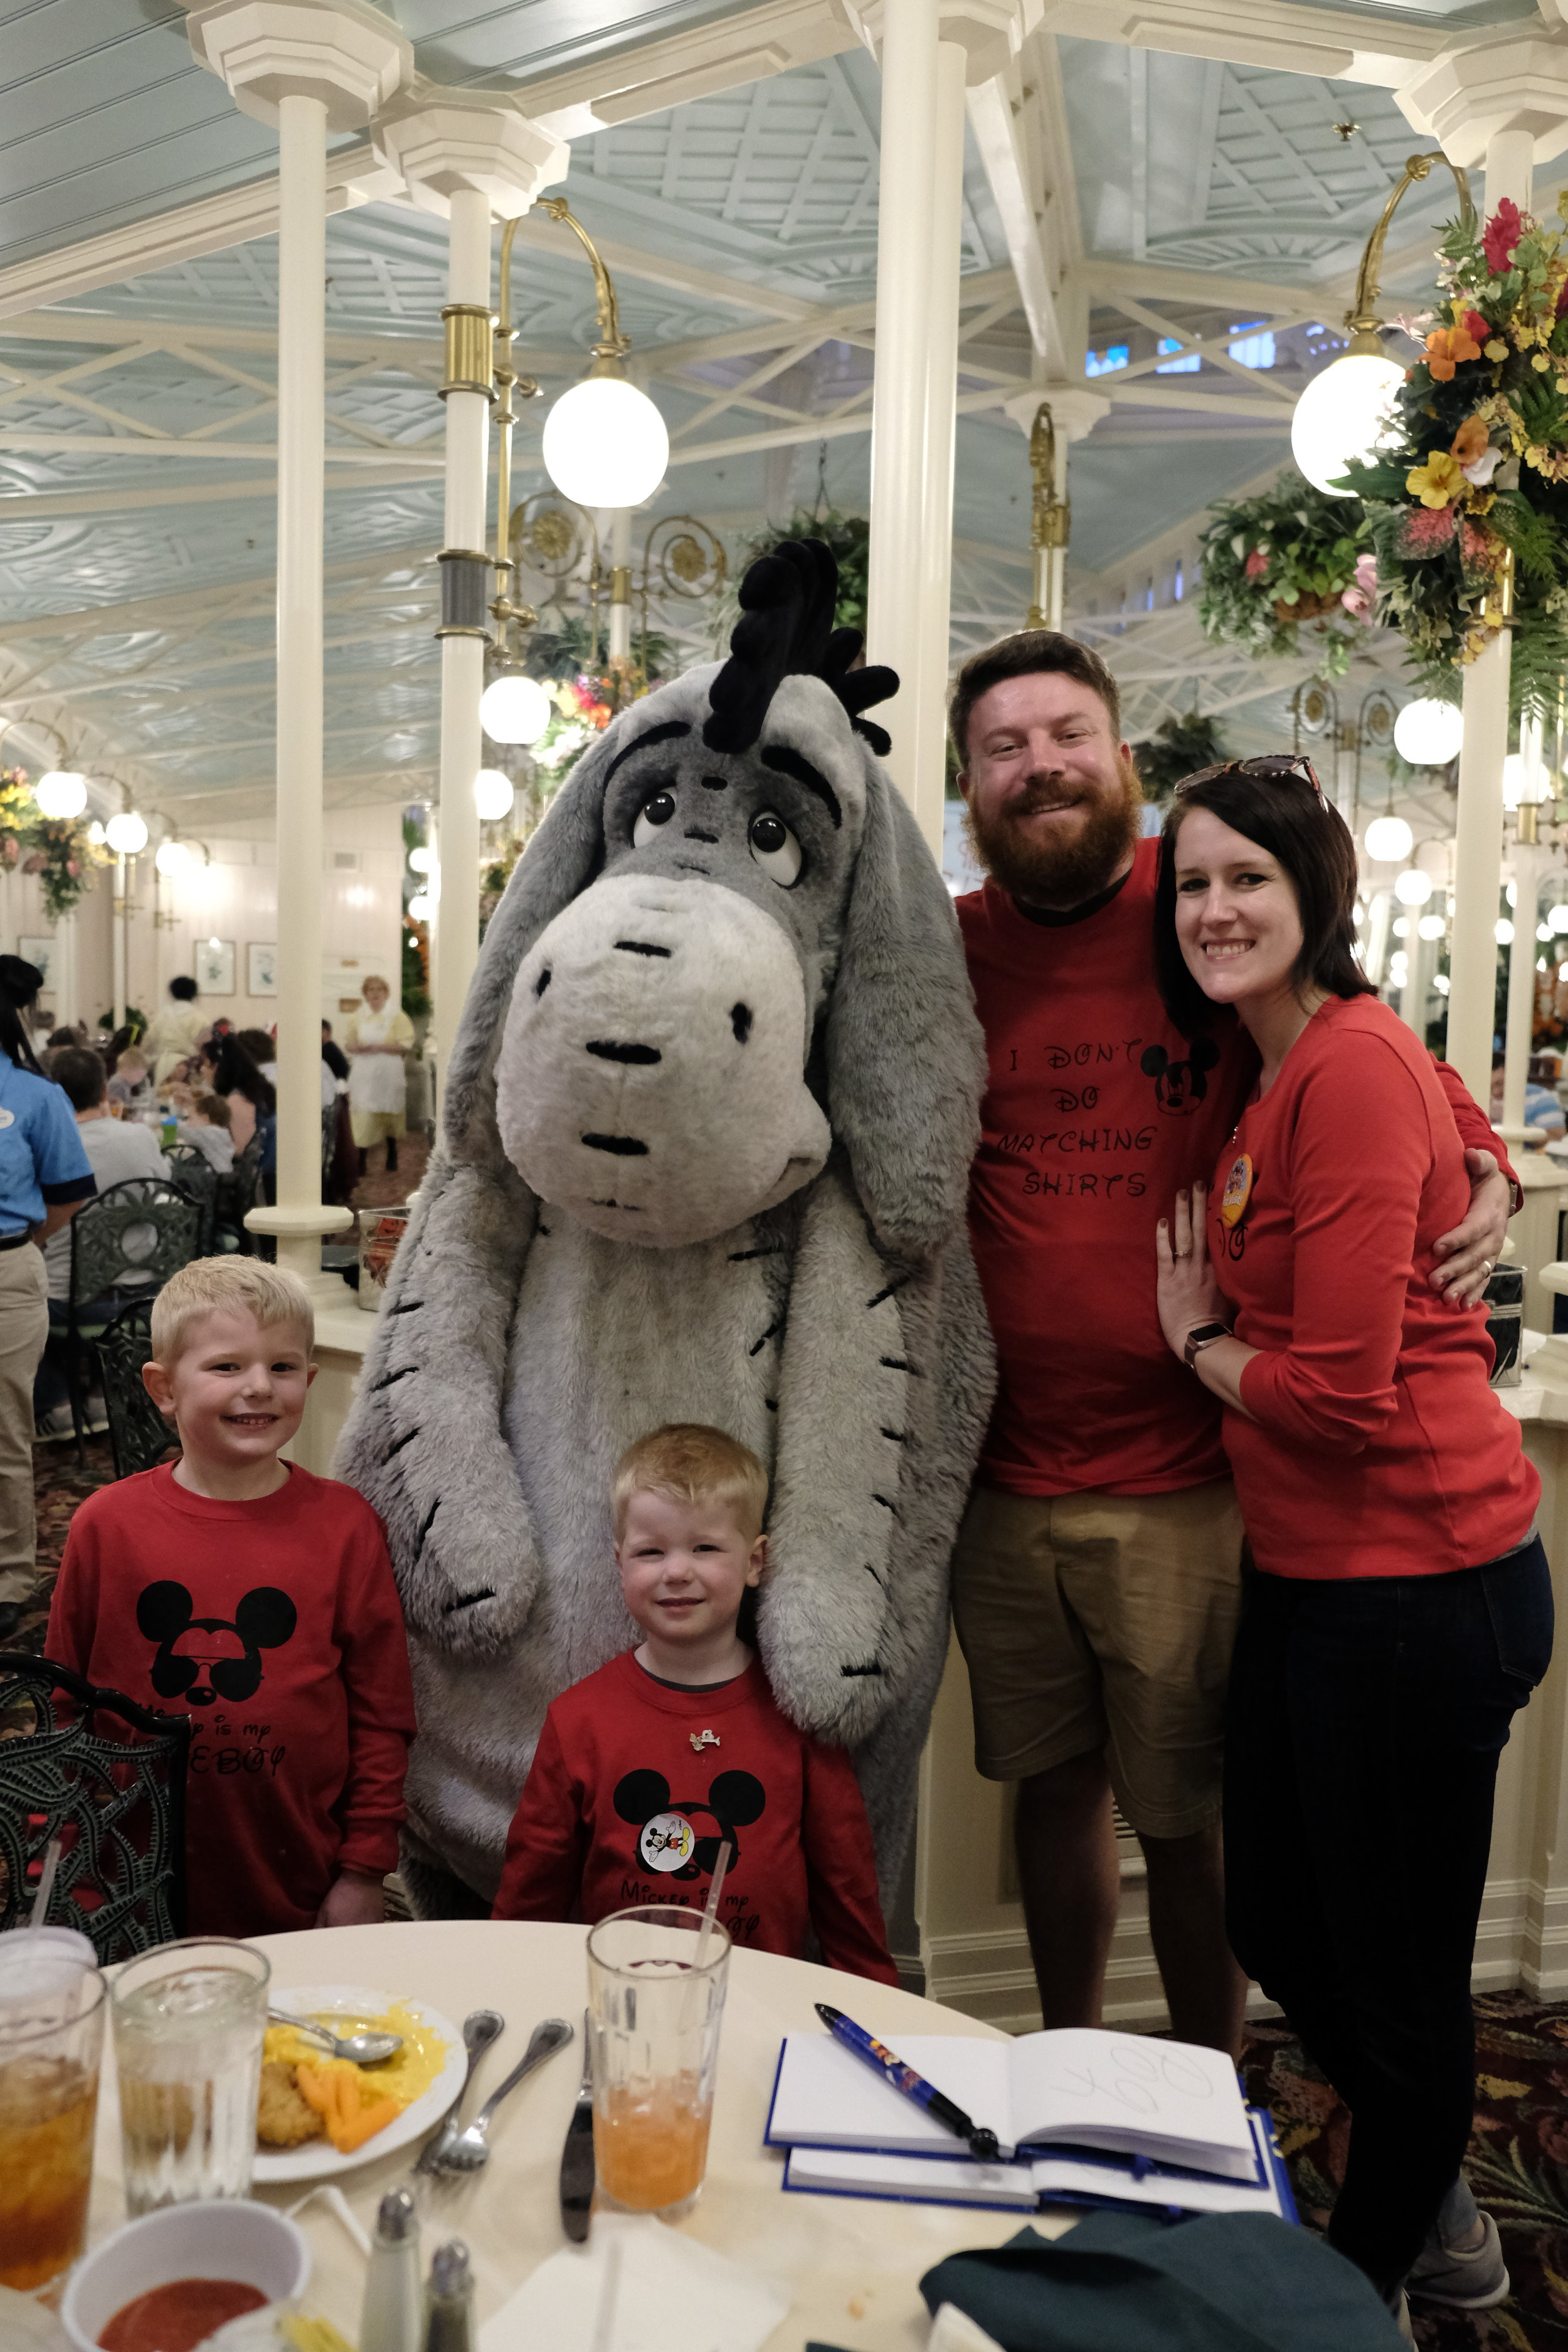 Wedding Photographers from Toledo Ohio Travel to Disney with Family for Vacation